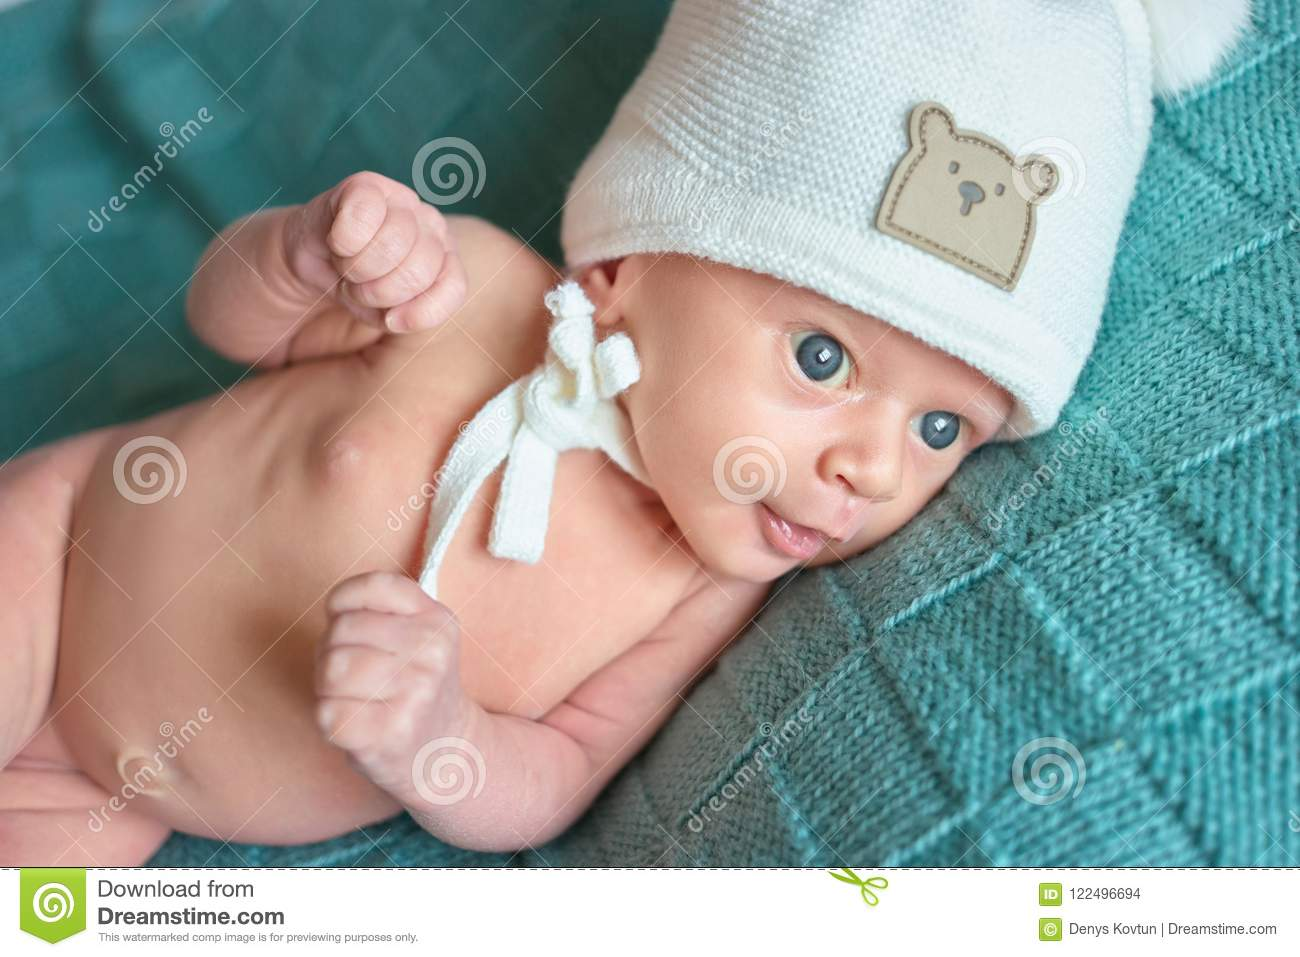 1cc066cbc897 Cute Naked Newborn Baby With White Woolen Hat. Stock Photo - Image ...